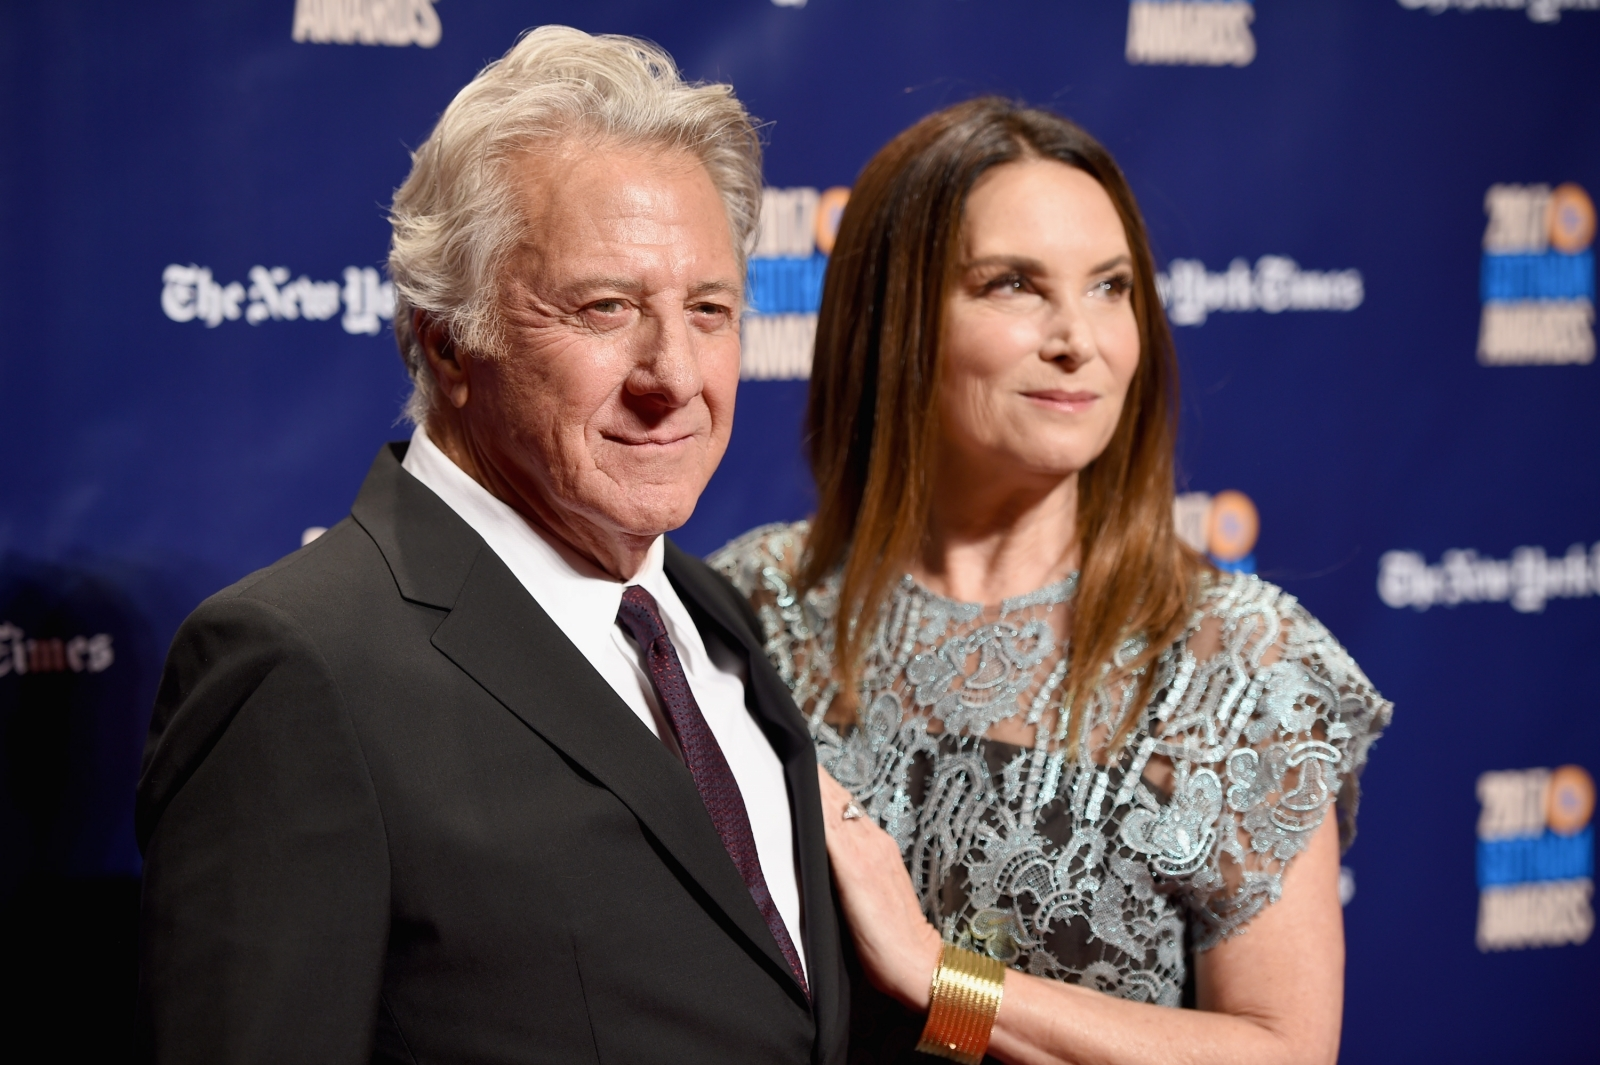 Dustin Hoffman Accused of Sexually Assaulting Two Women, Exposing Self to Teen